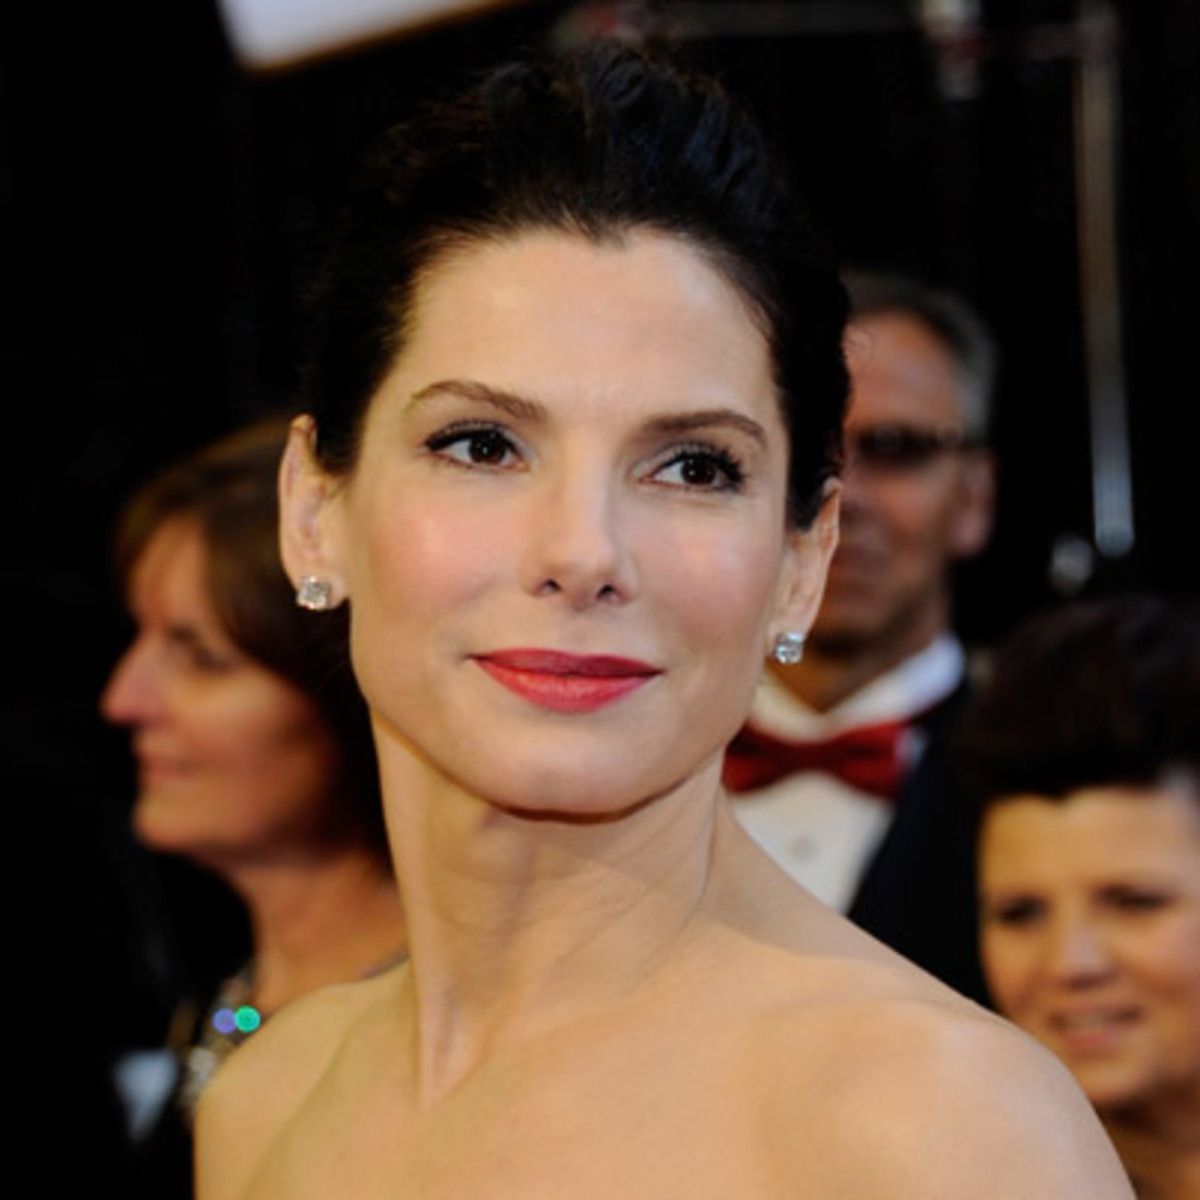 Sandra Bullock Biography & Net Worth